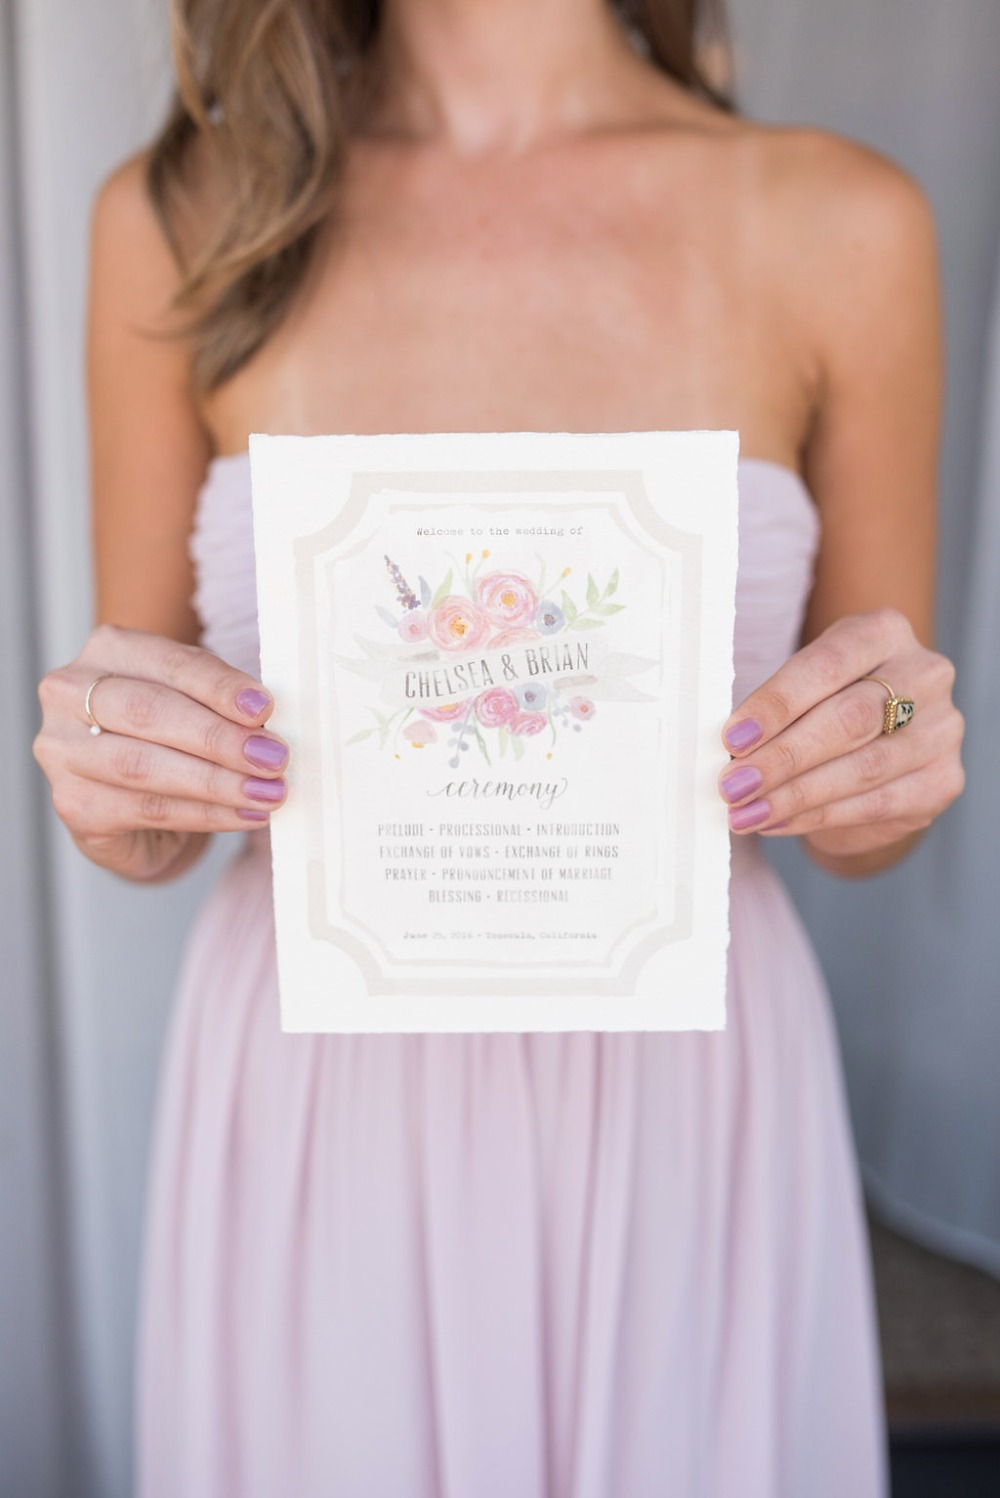 wedding invitations designed and painted by the bride